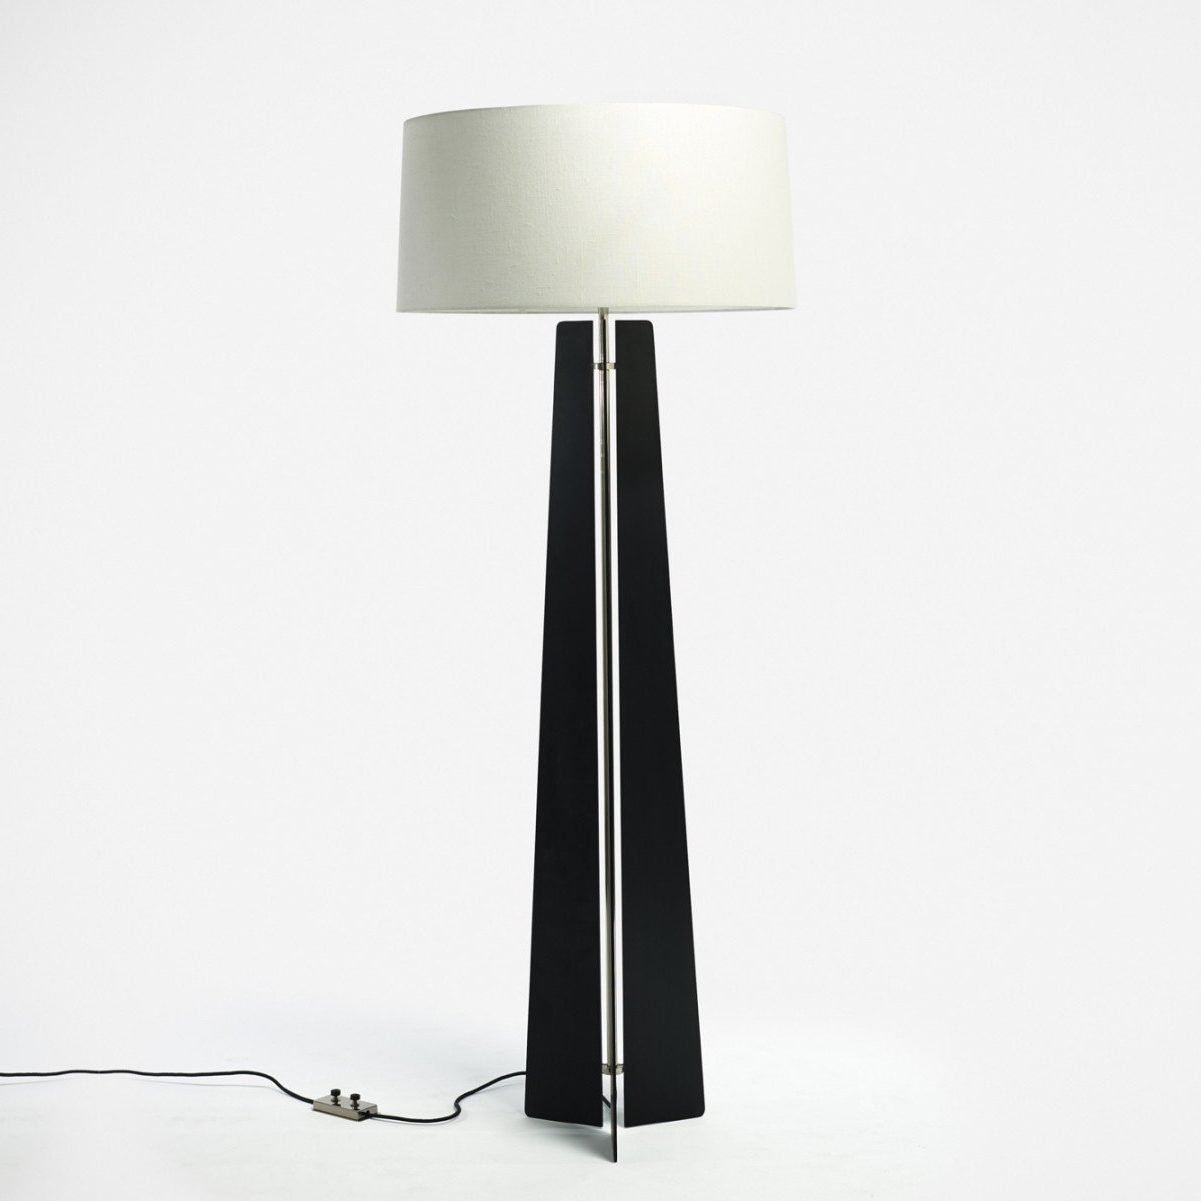 Jonathan Nesci |  Steel floor lamp